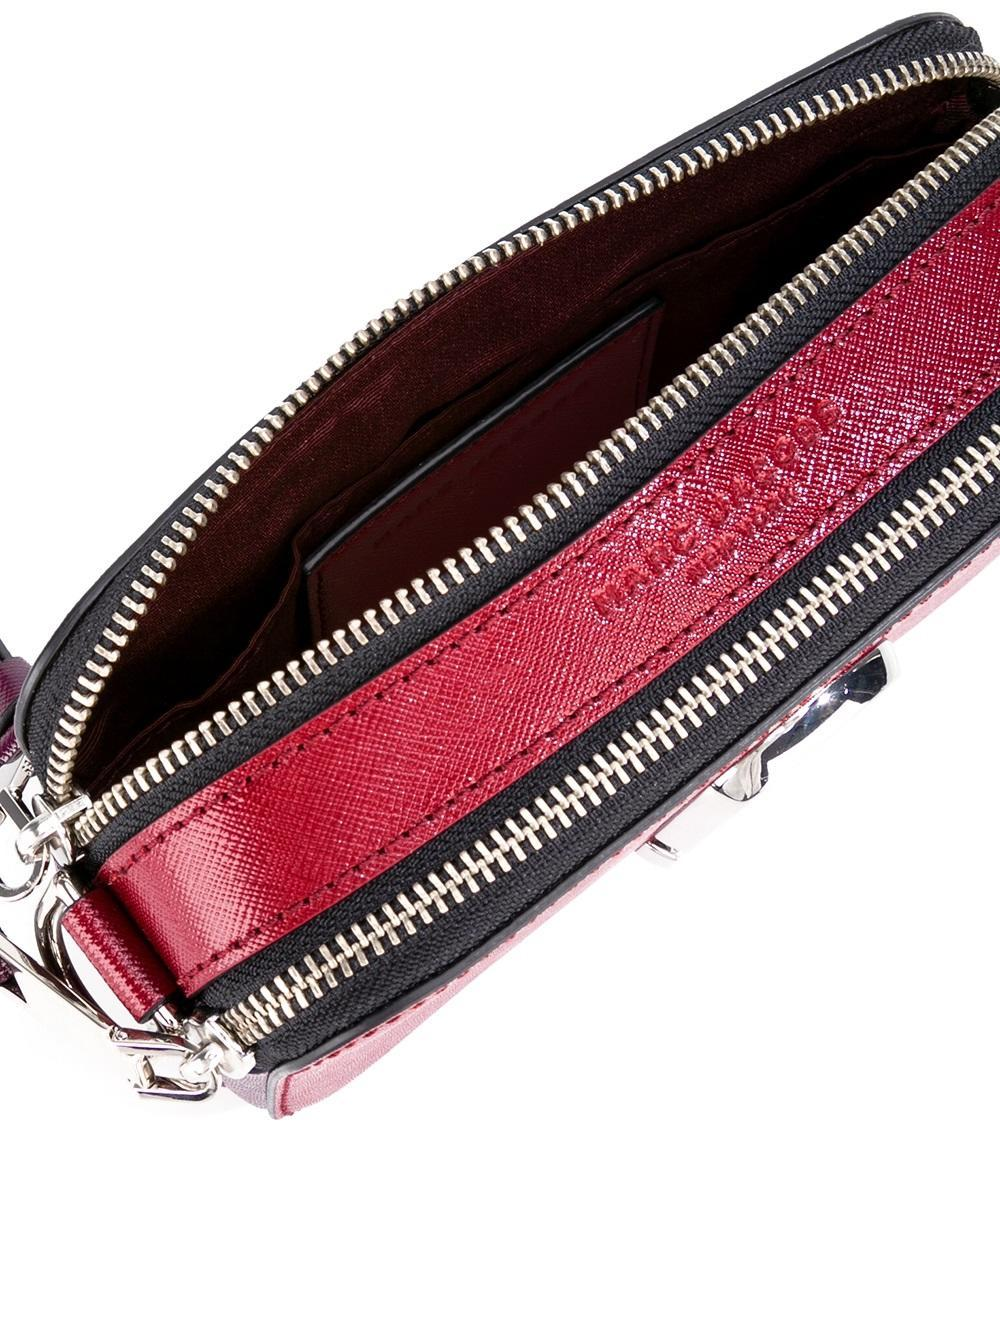 Marc Jacobs Leather 'snapshot' Camera Crossbody Bag in Red